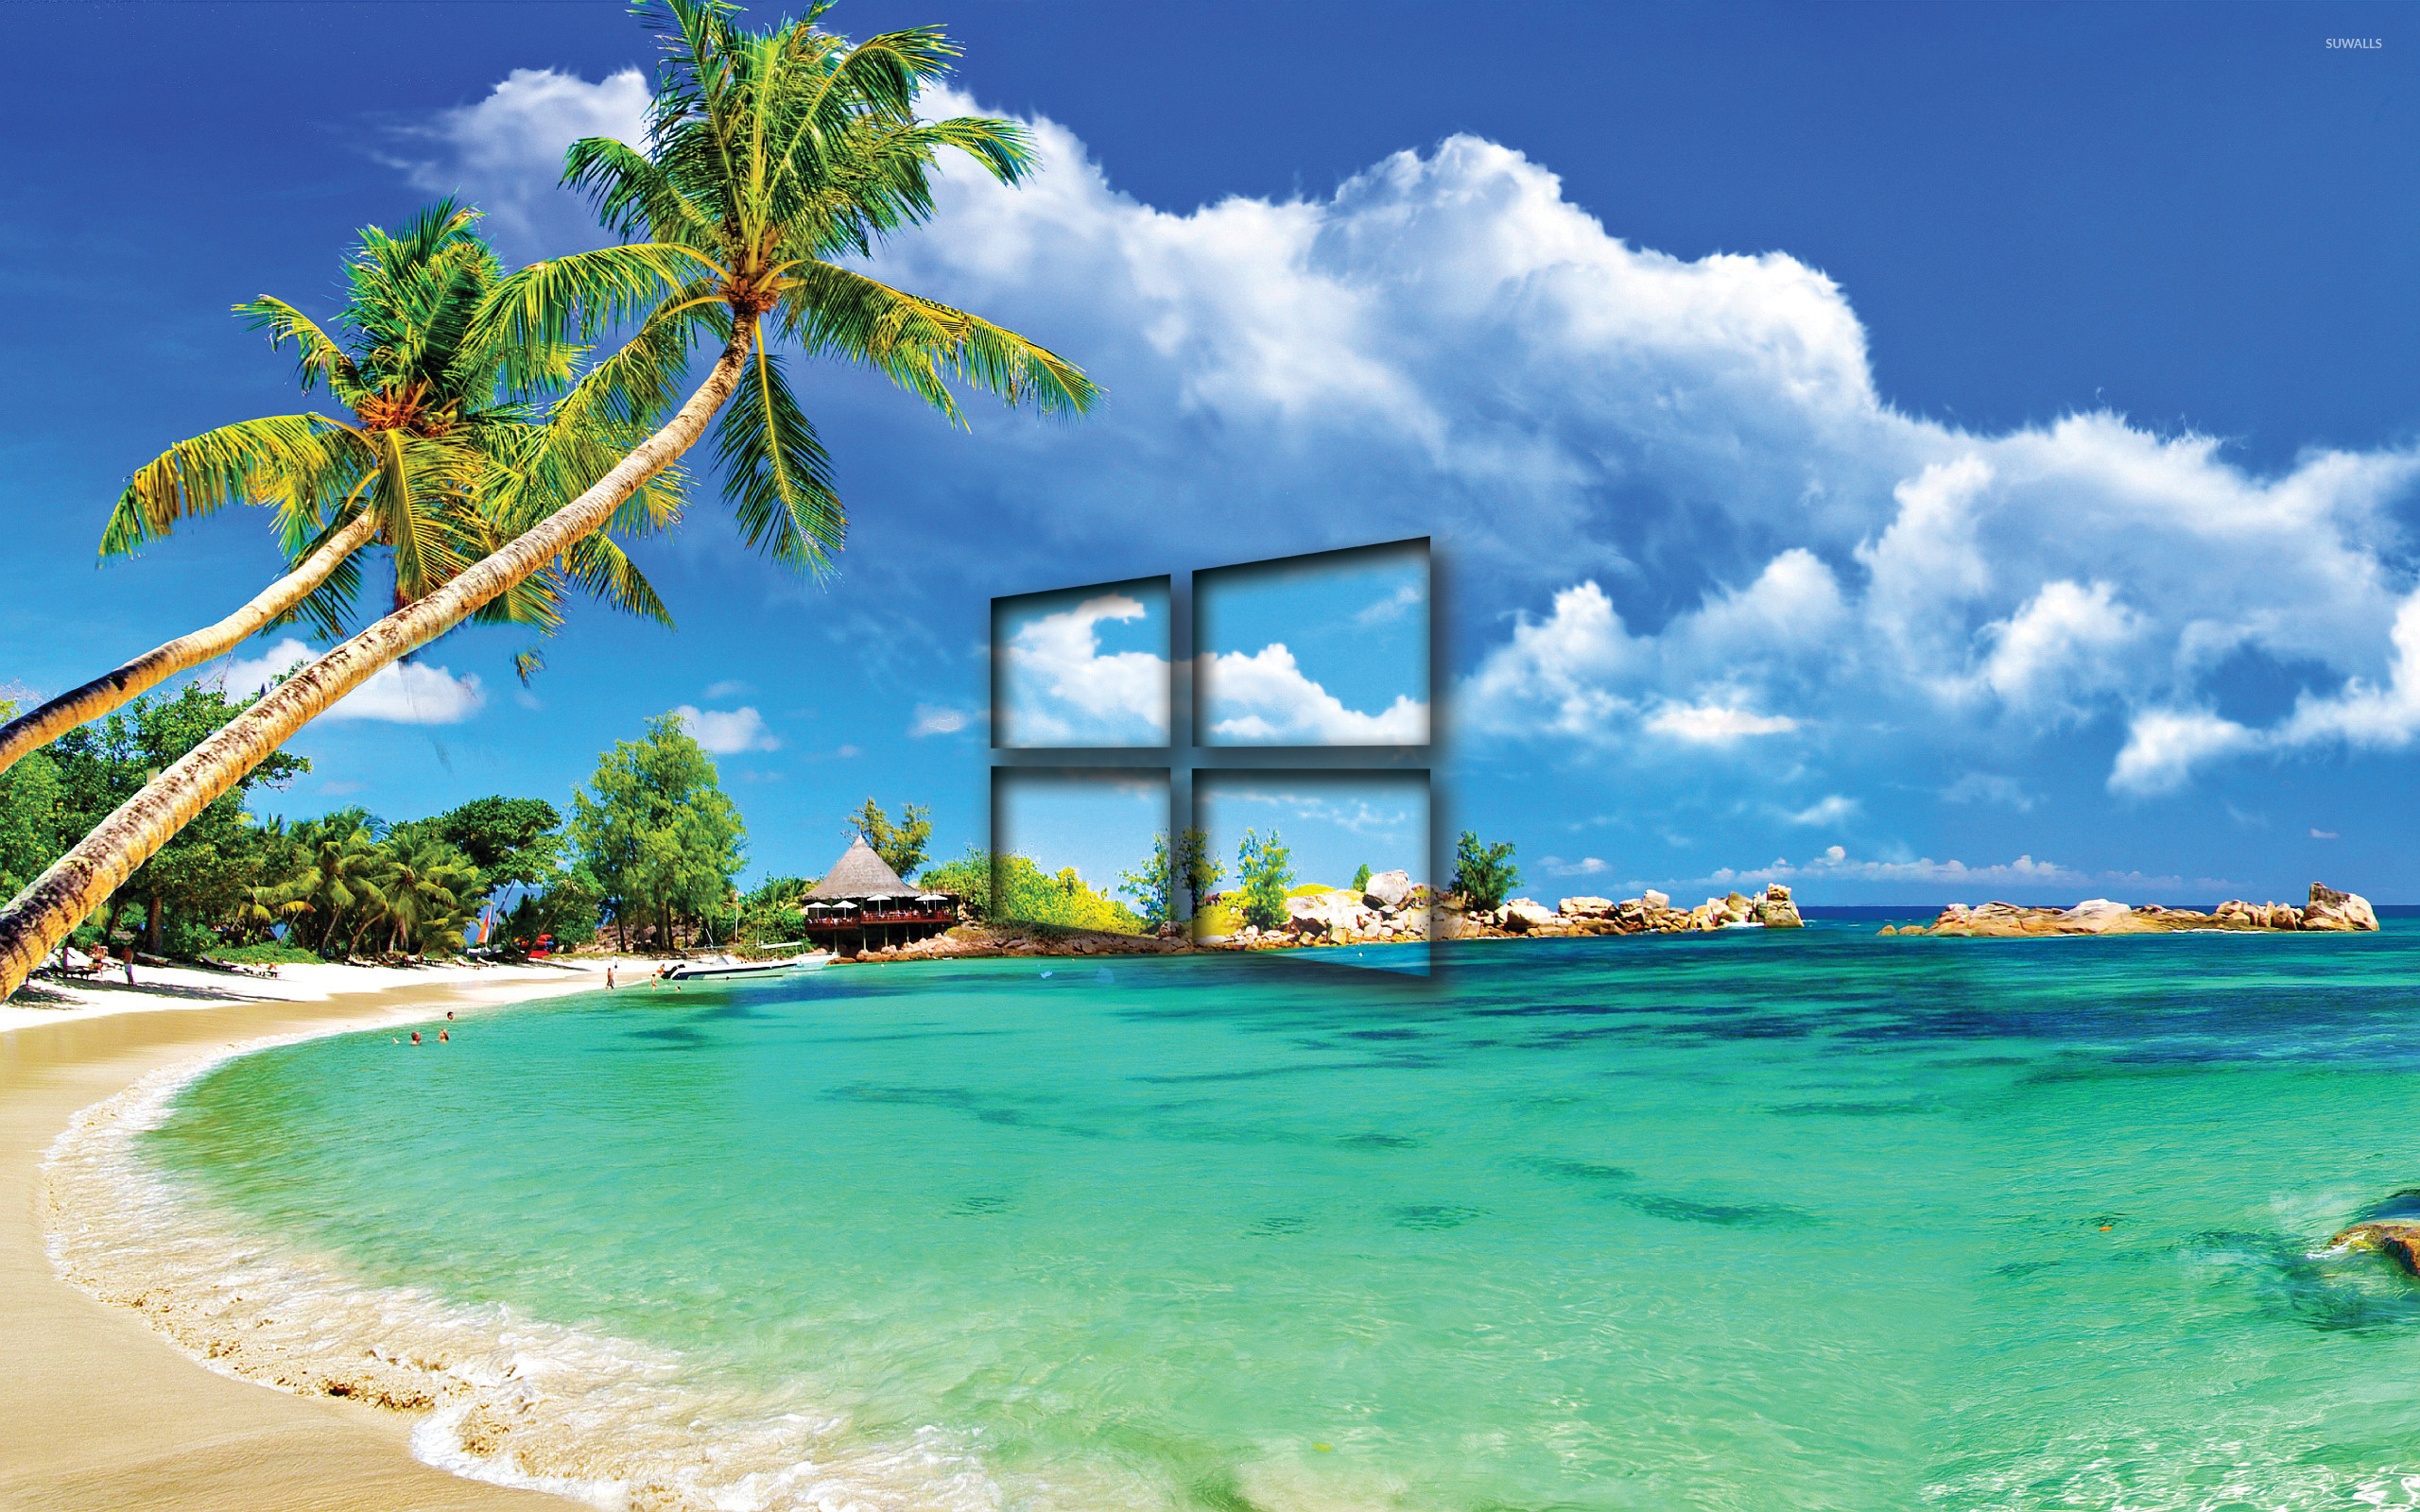 Windows 10 Transparent Logo On A Tropical Beach Wallpaper Computer Wallpapers 46335